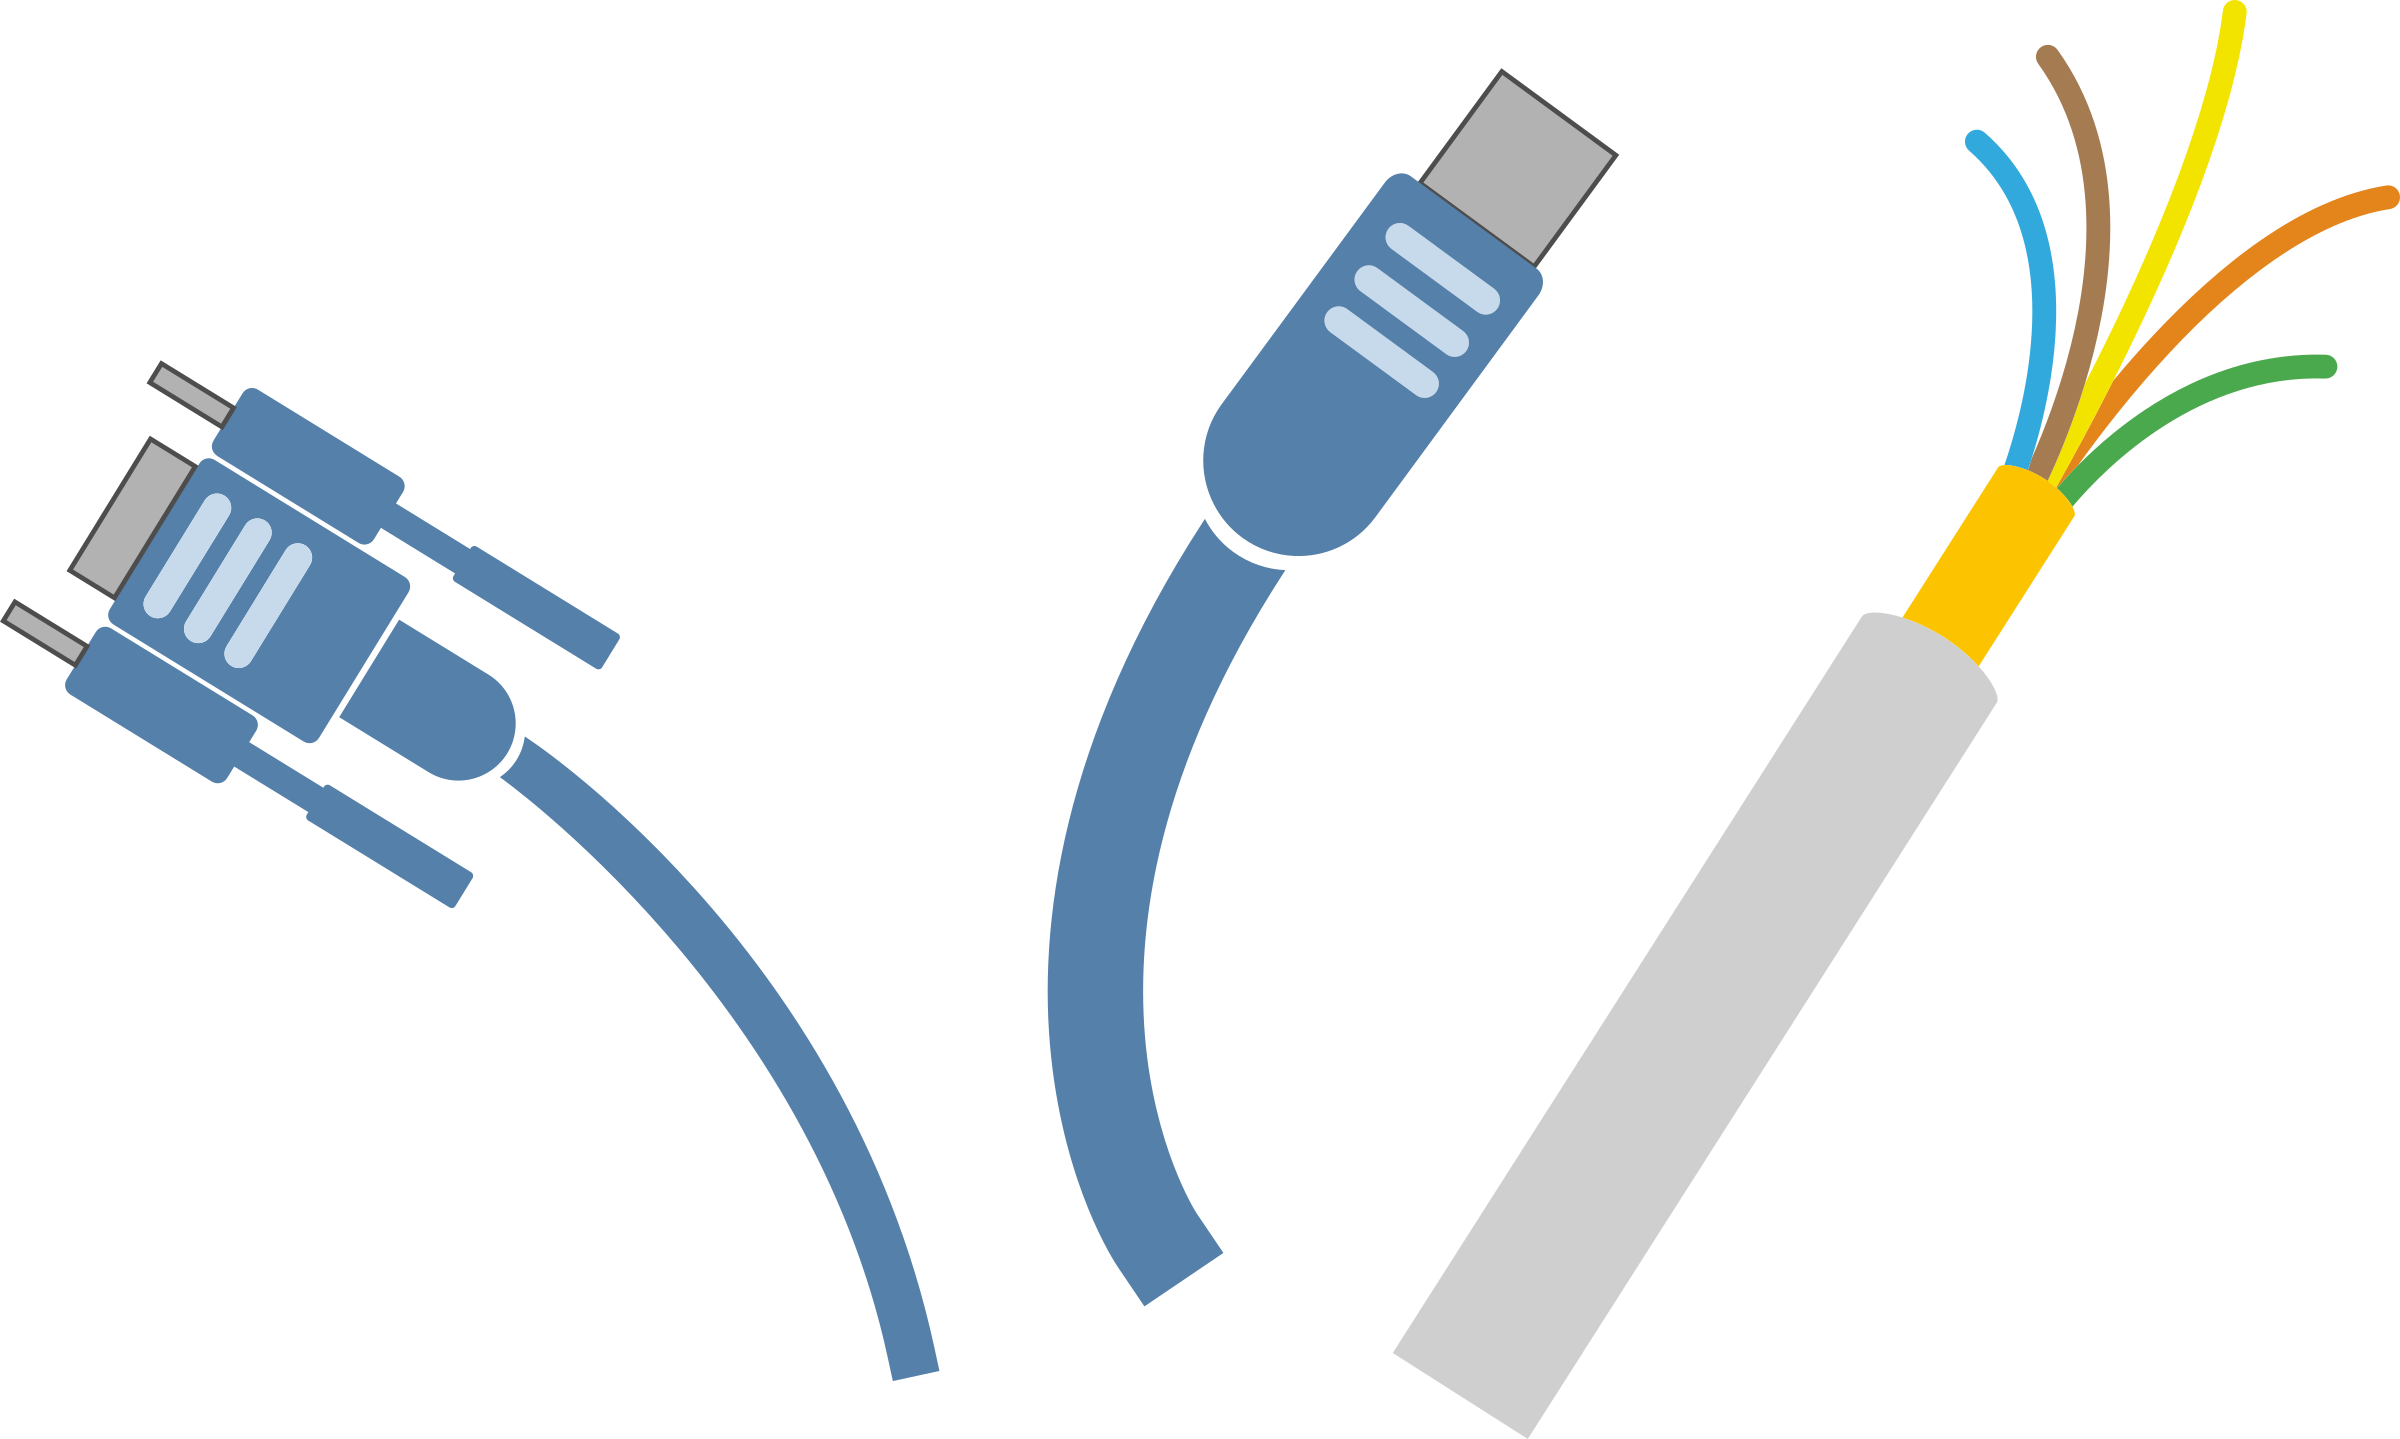 Plug clipart electric wire #9